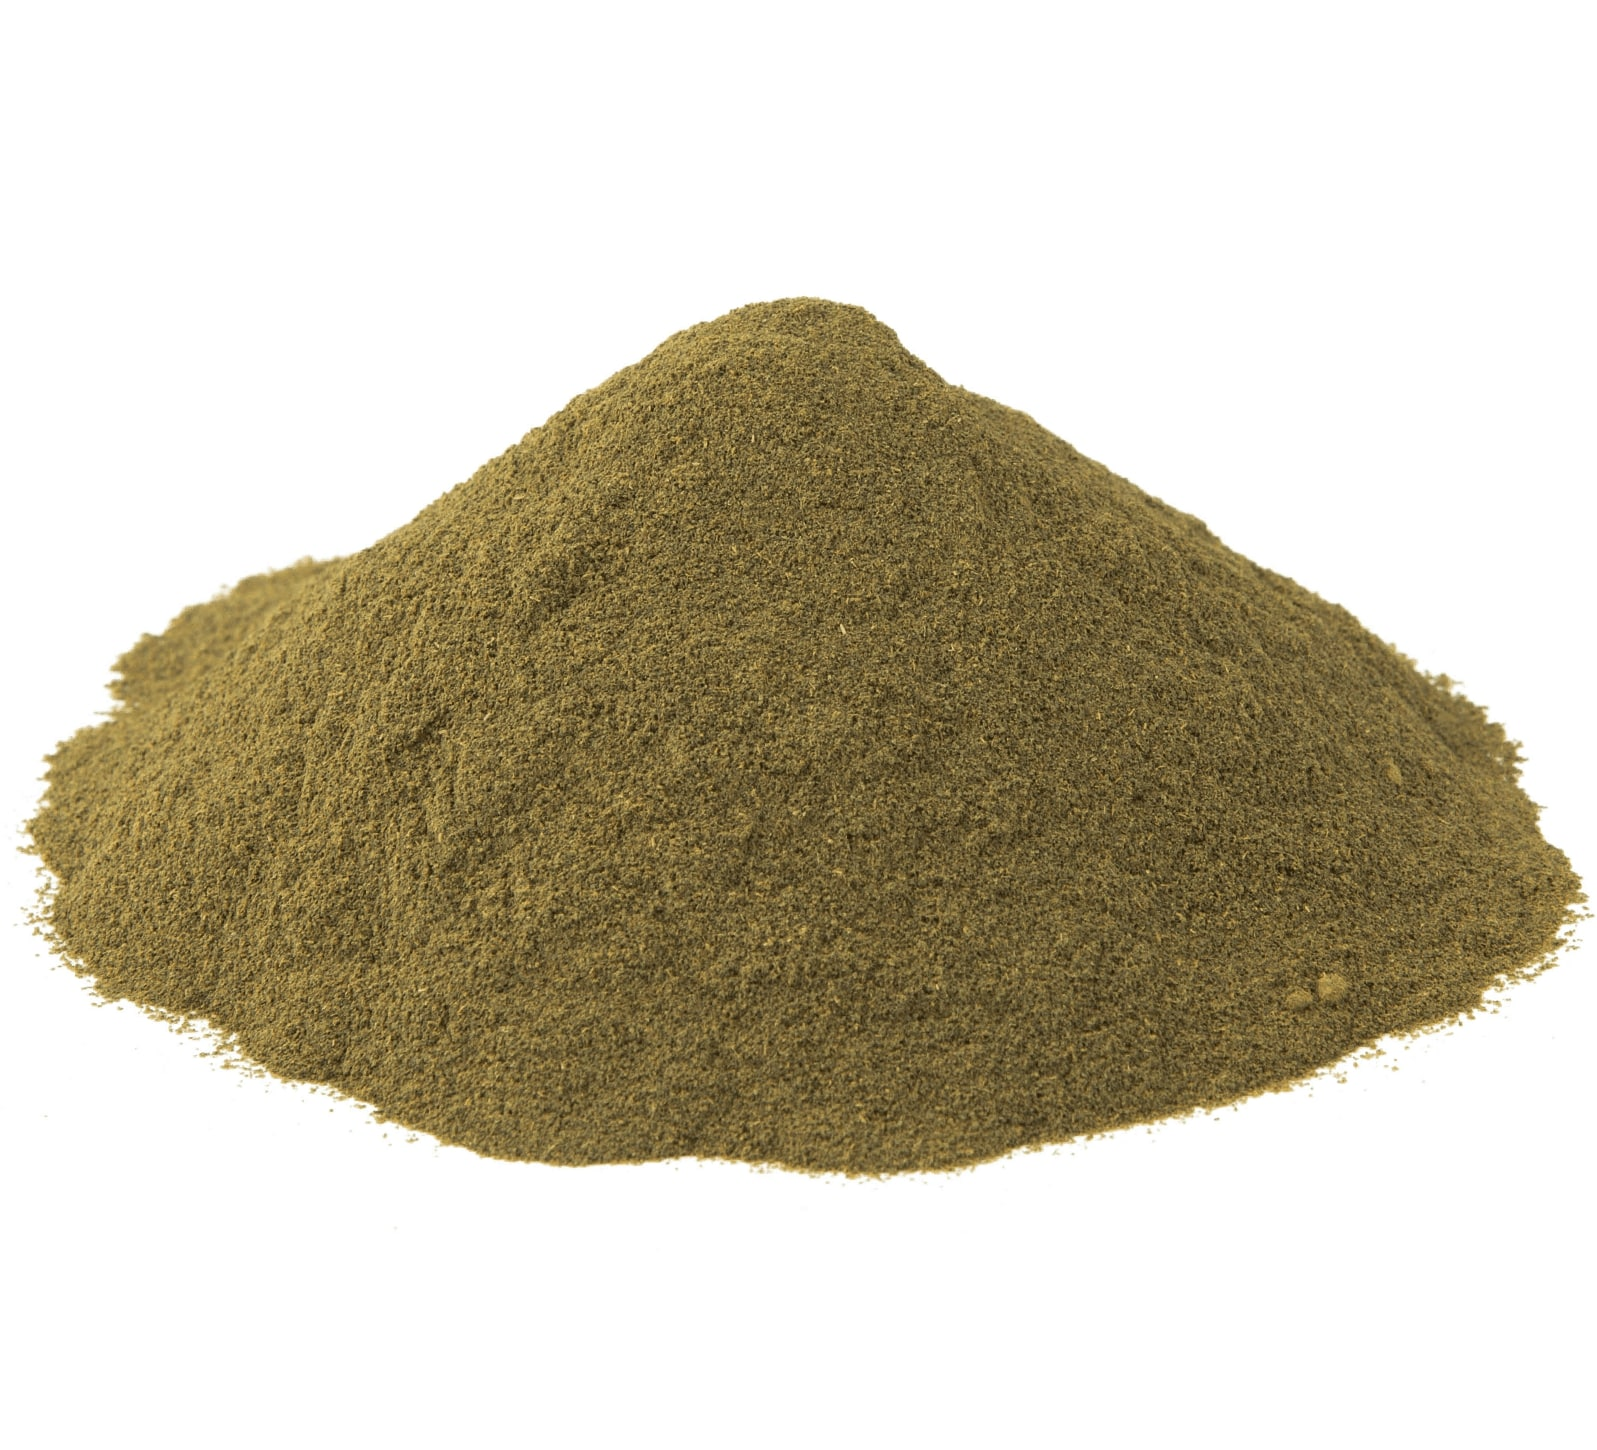 Red Bali Kratom for Sale